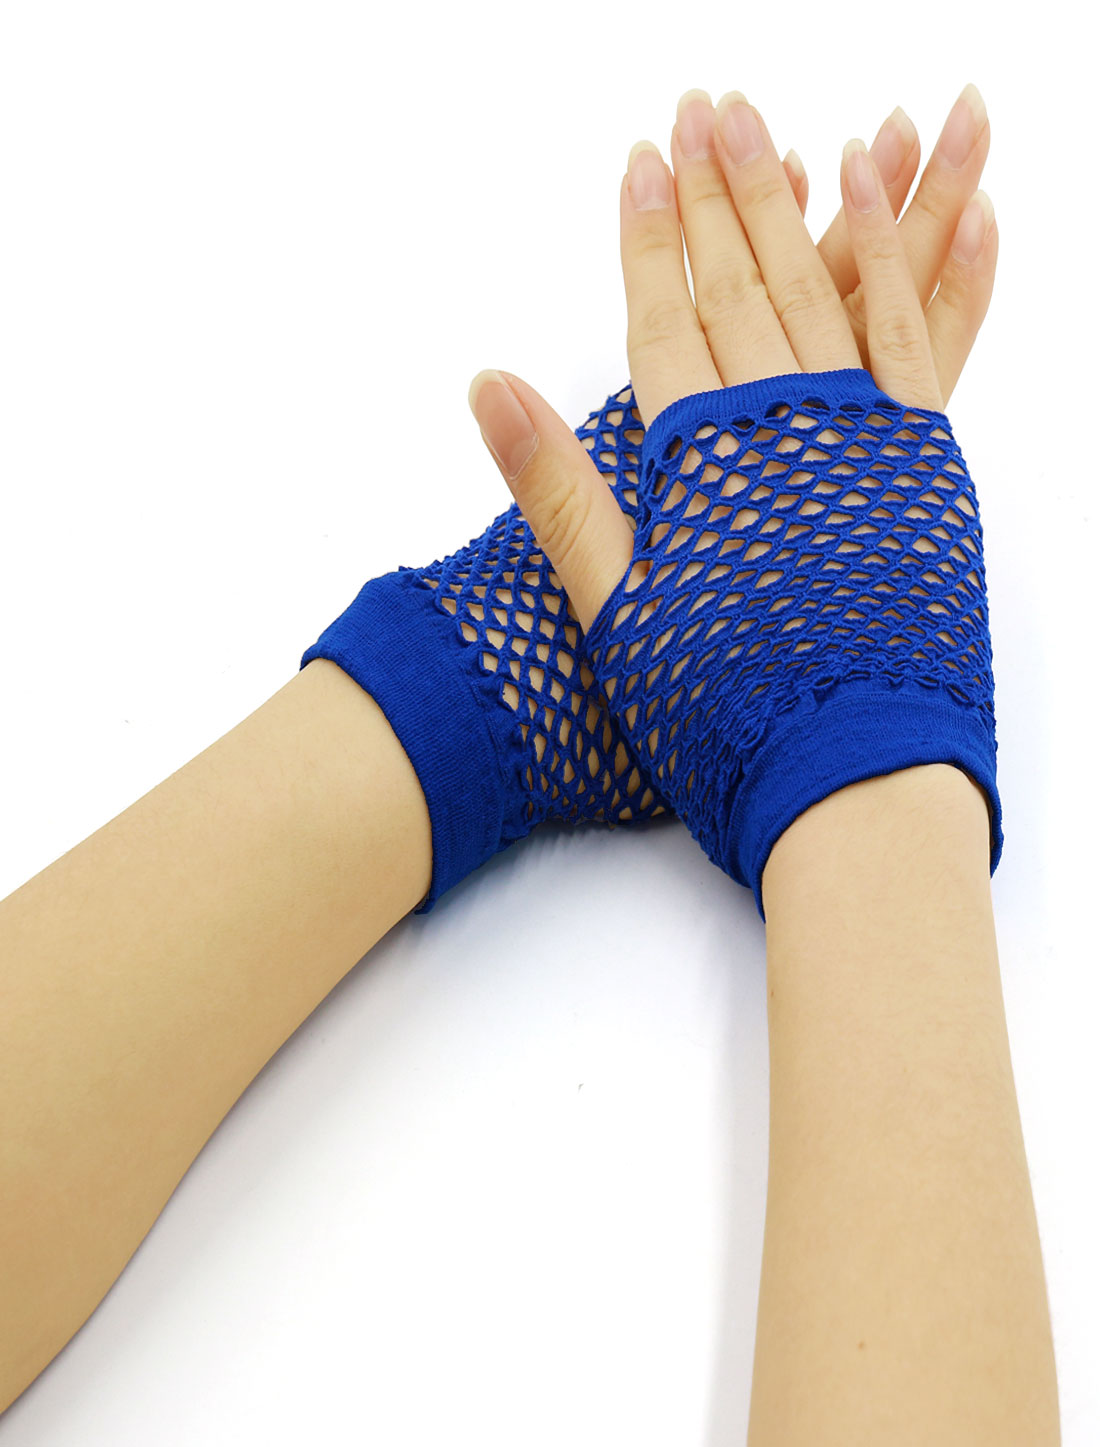 Women Wrist Length Stretchy Fingerless Fishnet Gloves 2 Pairs Royal Blue